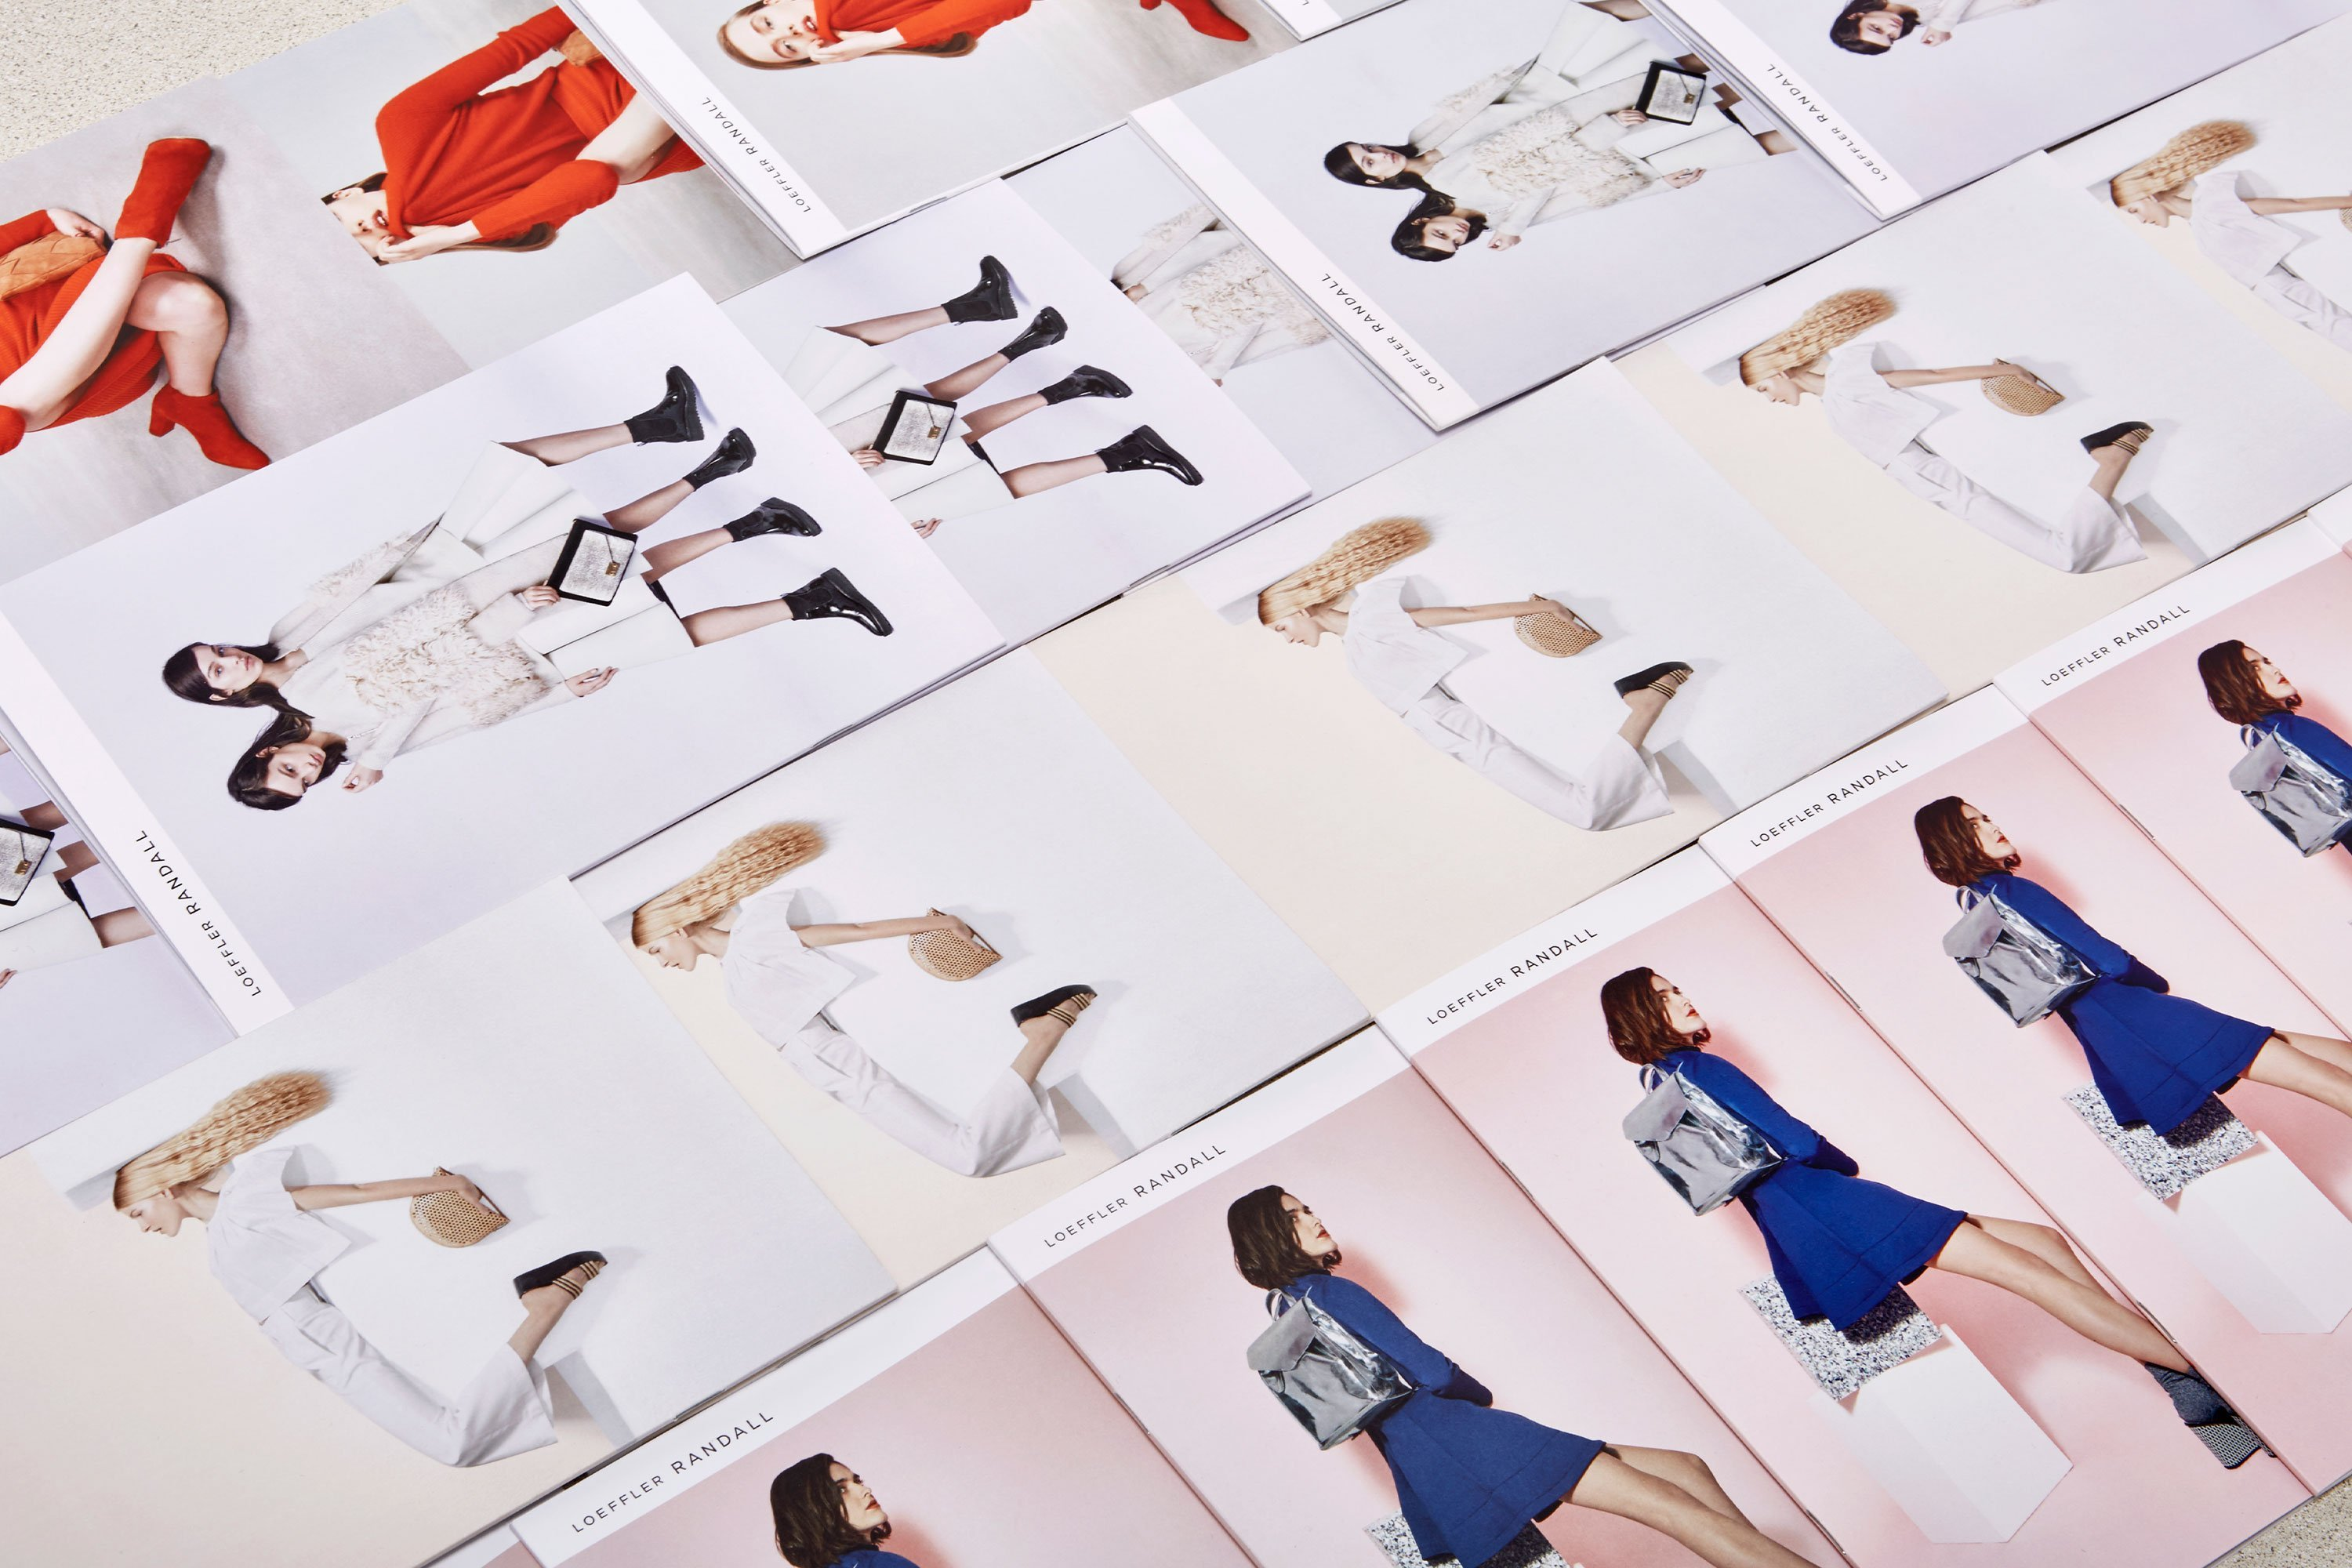 Overview of printed campaign ads featuring Loeffler Randall shoes and accessories. Art Direction by RoAndCo